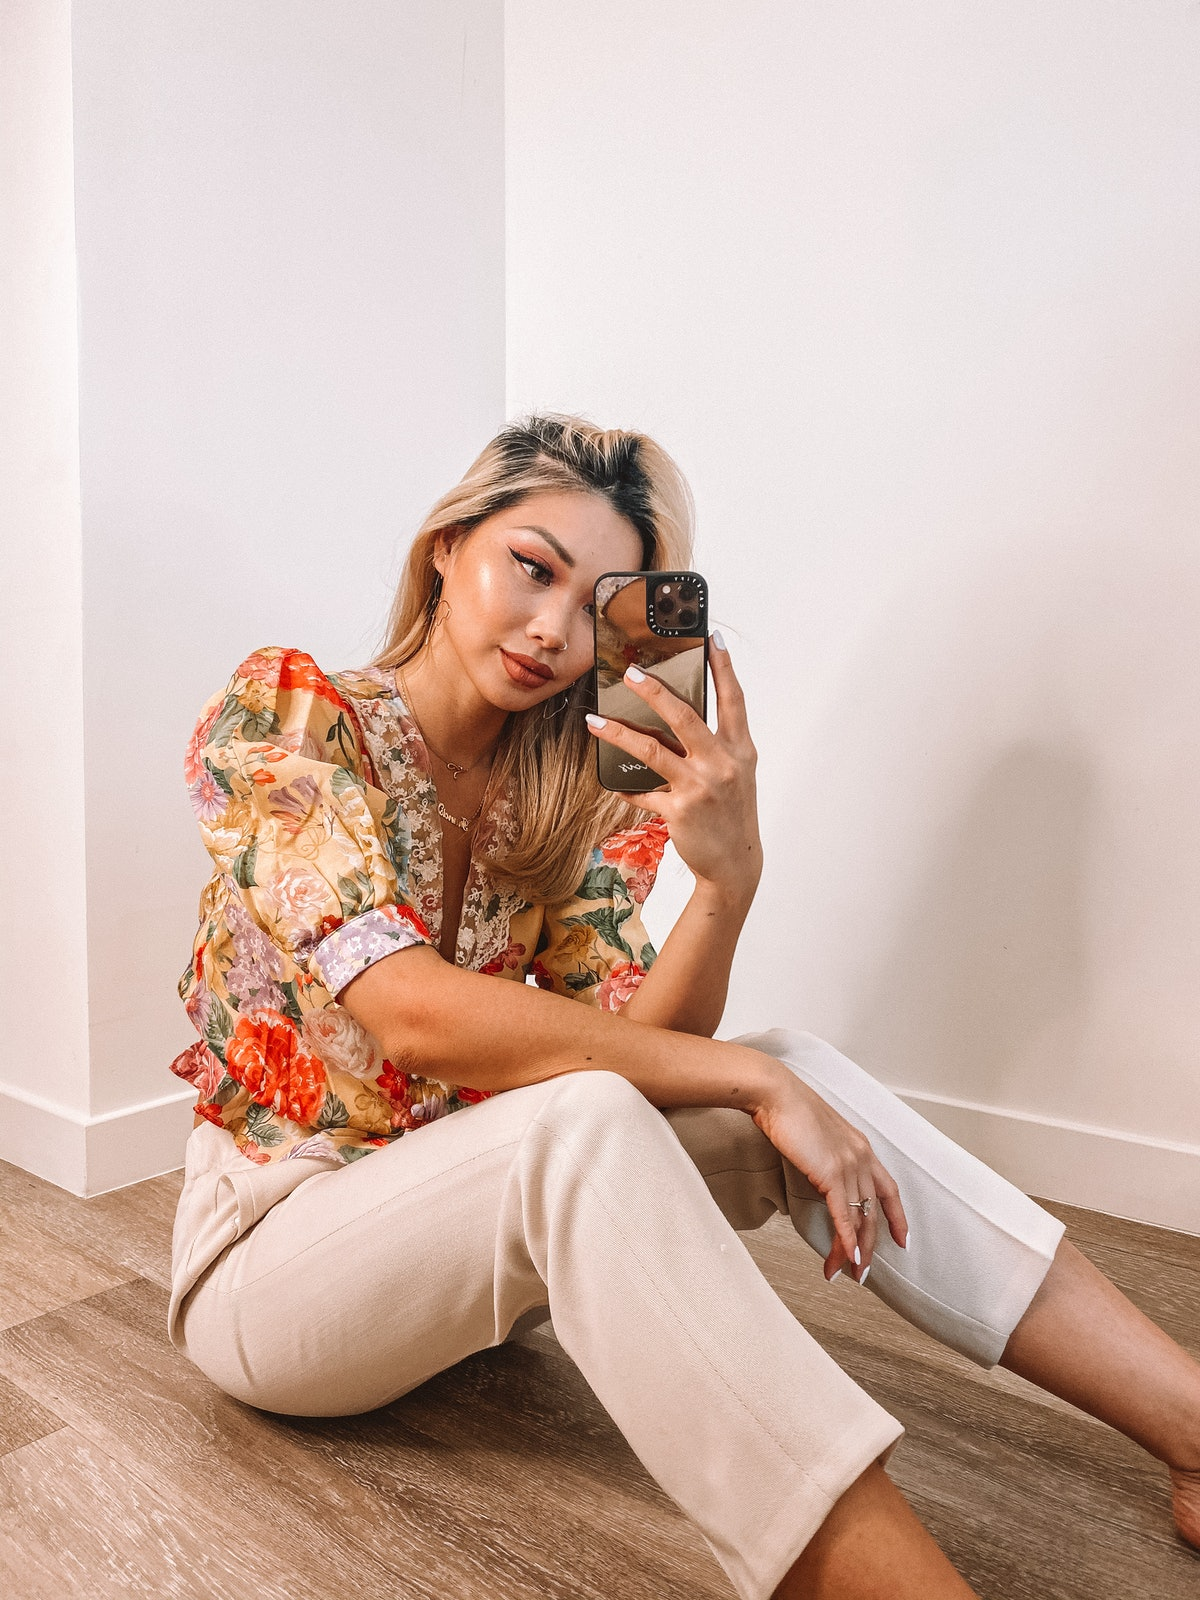 A woman with a floral top and tan capris sits on the floor and takes a mirror selfie.